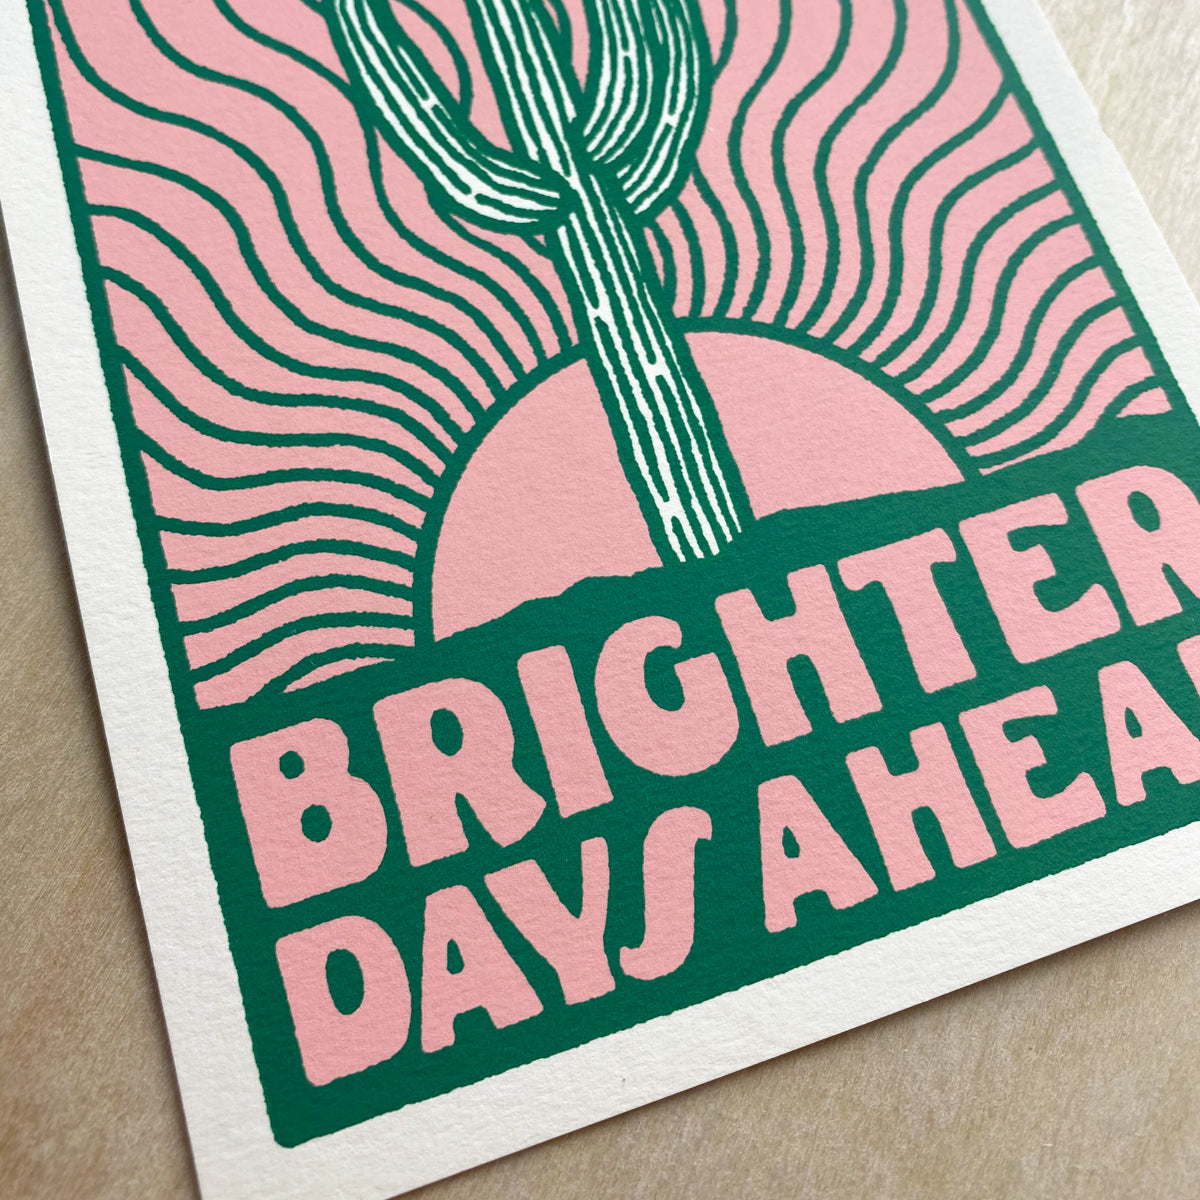 Brighter Days - Signed Print #193